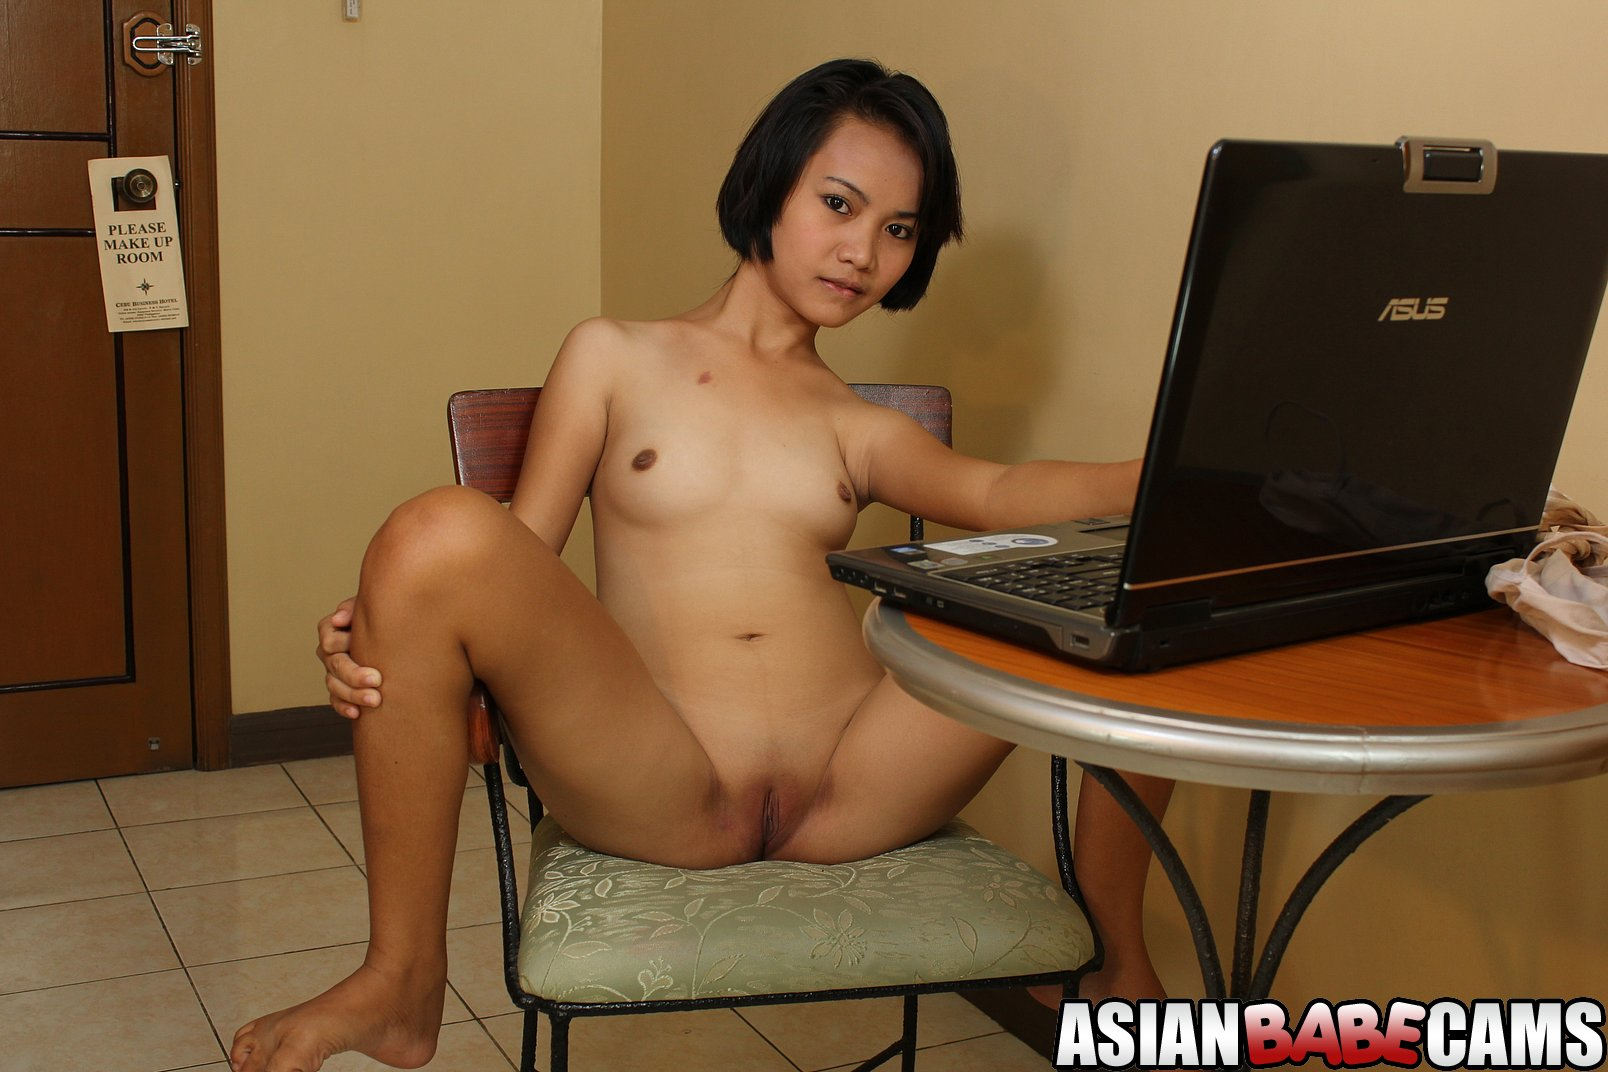 Free asian nude cams